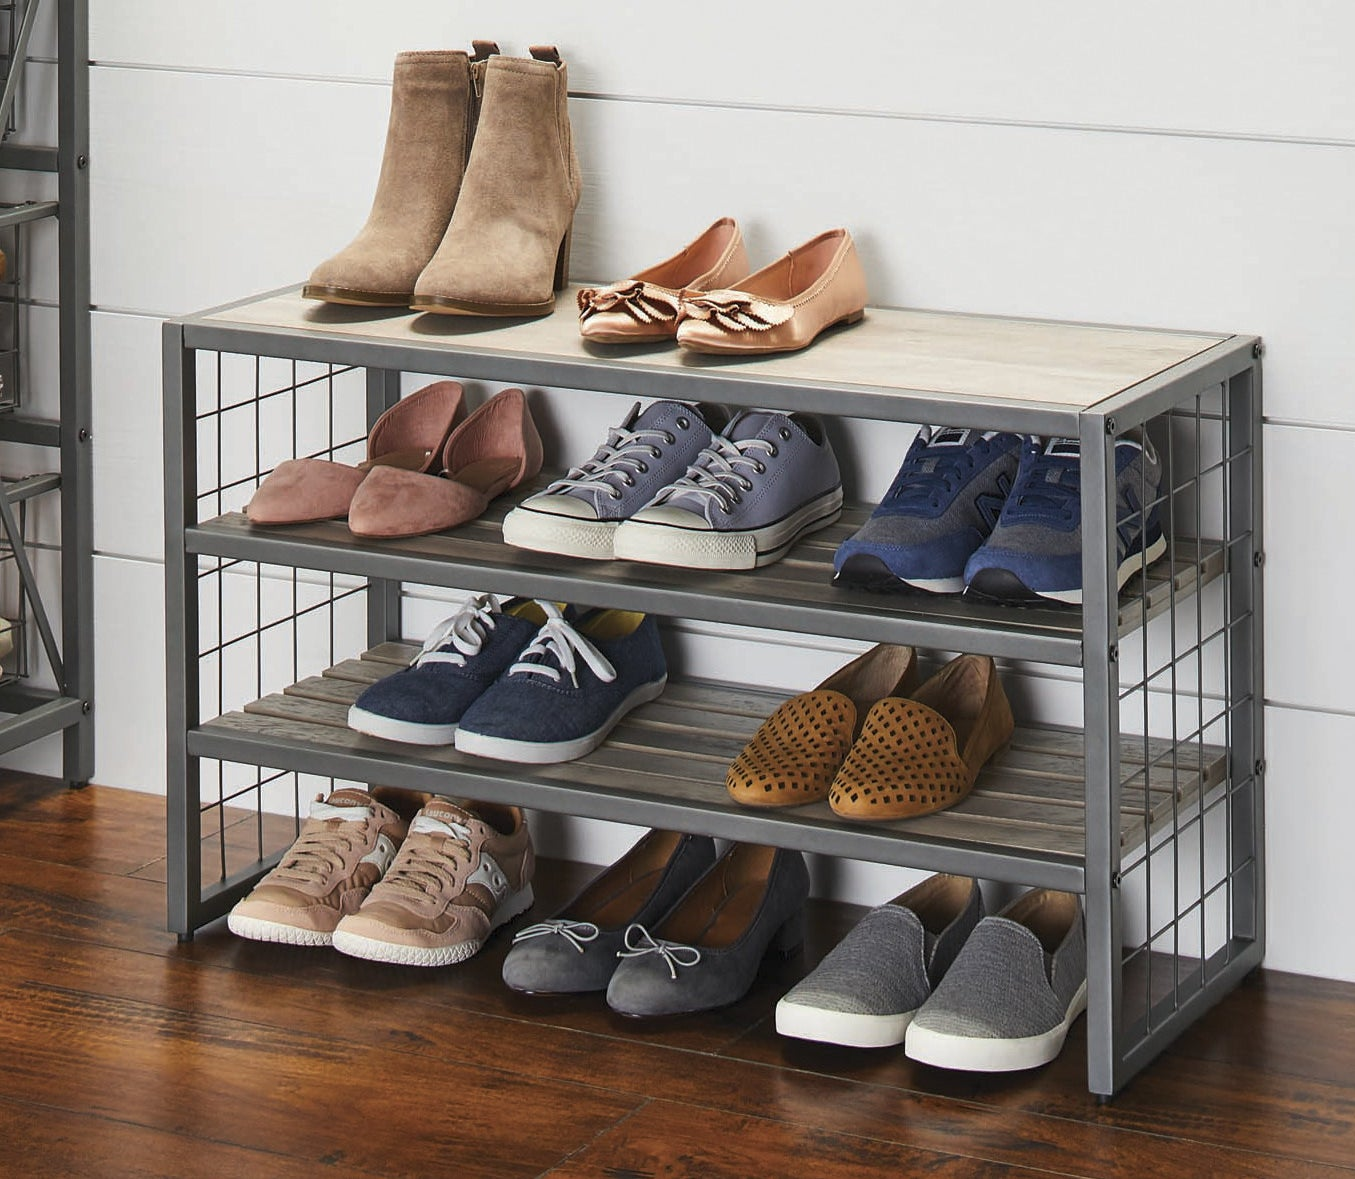 A four shelf shoe rack in gray wood